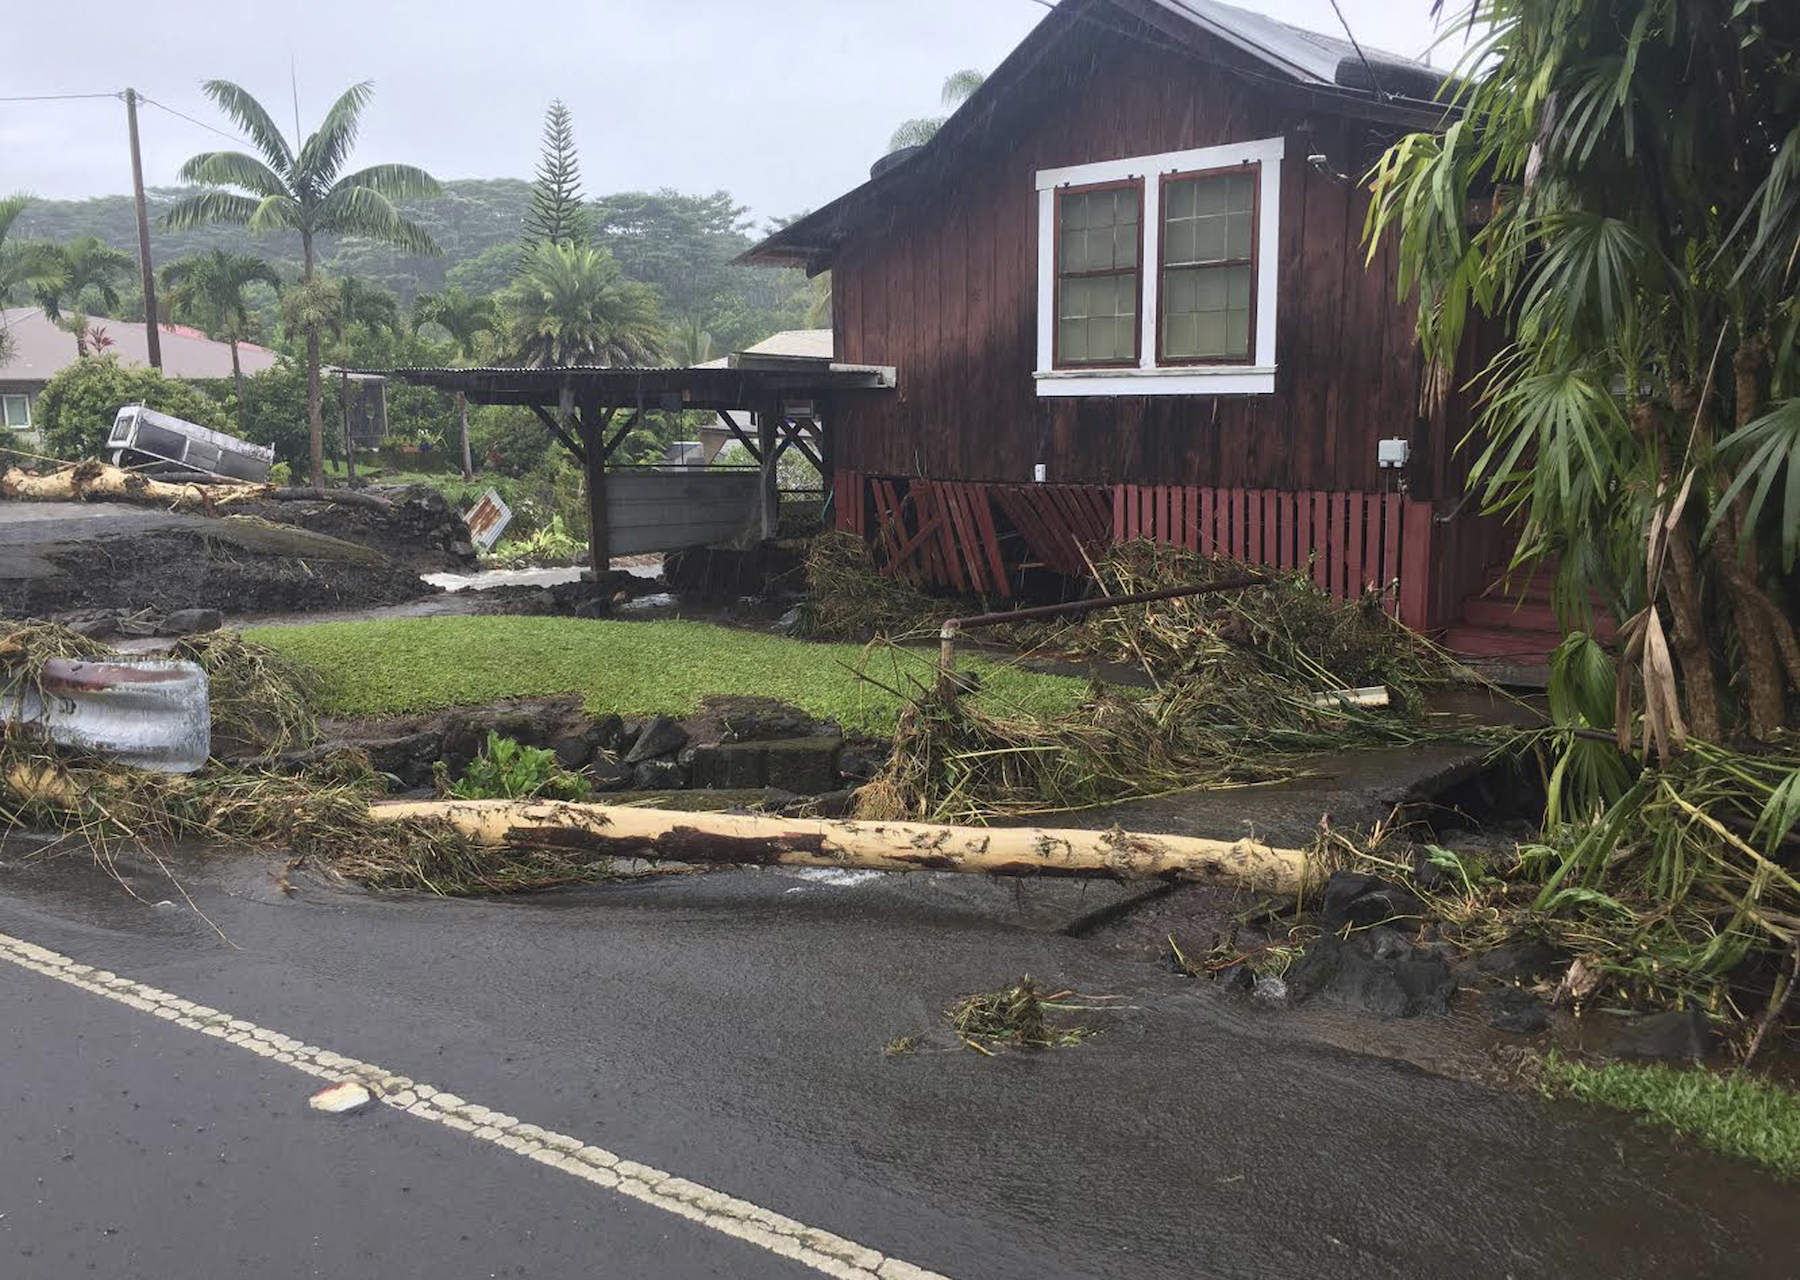 <div class='meta'><div class='origin-logo' data-origin='AP'></div><span class='caption-text' data-credit='Jessica Henricks via AP'>This photo provided by Jessica Henricks shows damage from Hurricane Lane Friday, Aug. 24, 2018, near Hilo, Hawaii.</span></div>